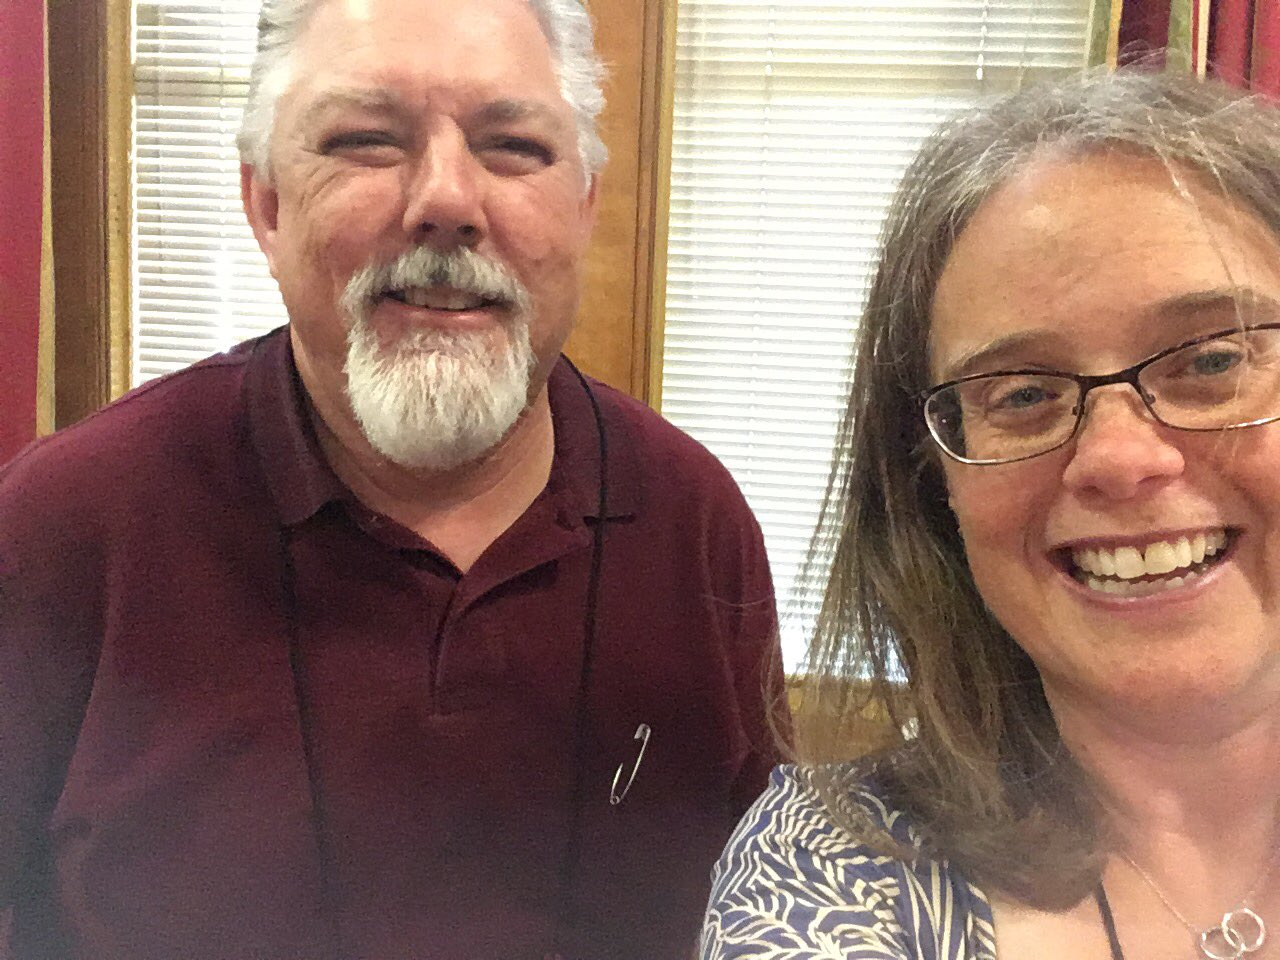 #StokerCon2017 selfies with Daryl from @LAPublicLibrary part of @ala_rusa CODES reading list. Cc: @mszwarek https://t.co/phxnw2HN2m